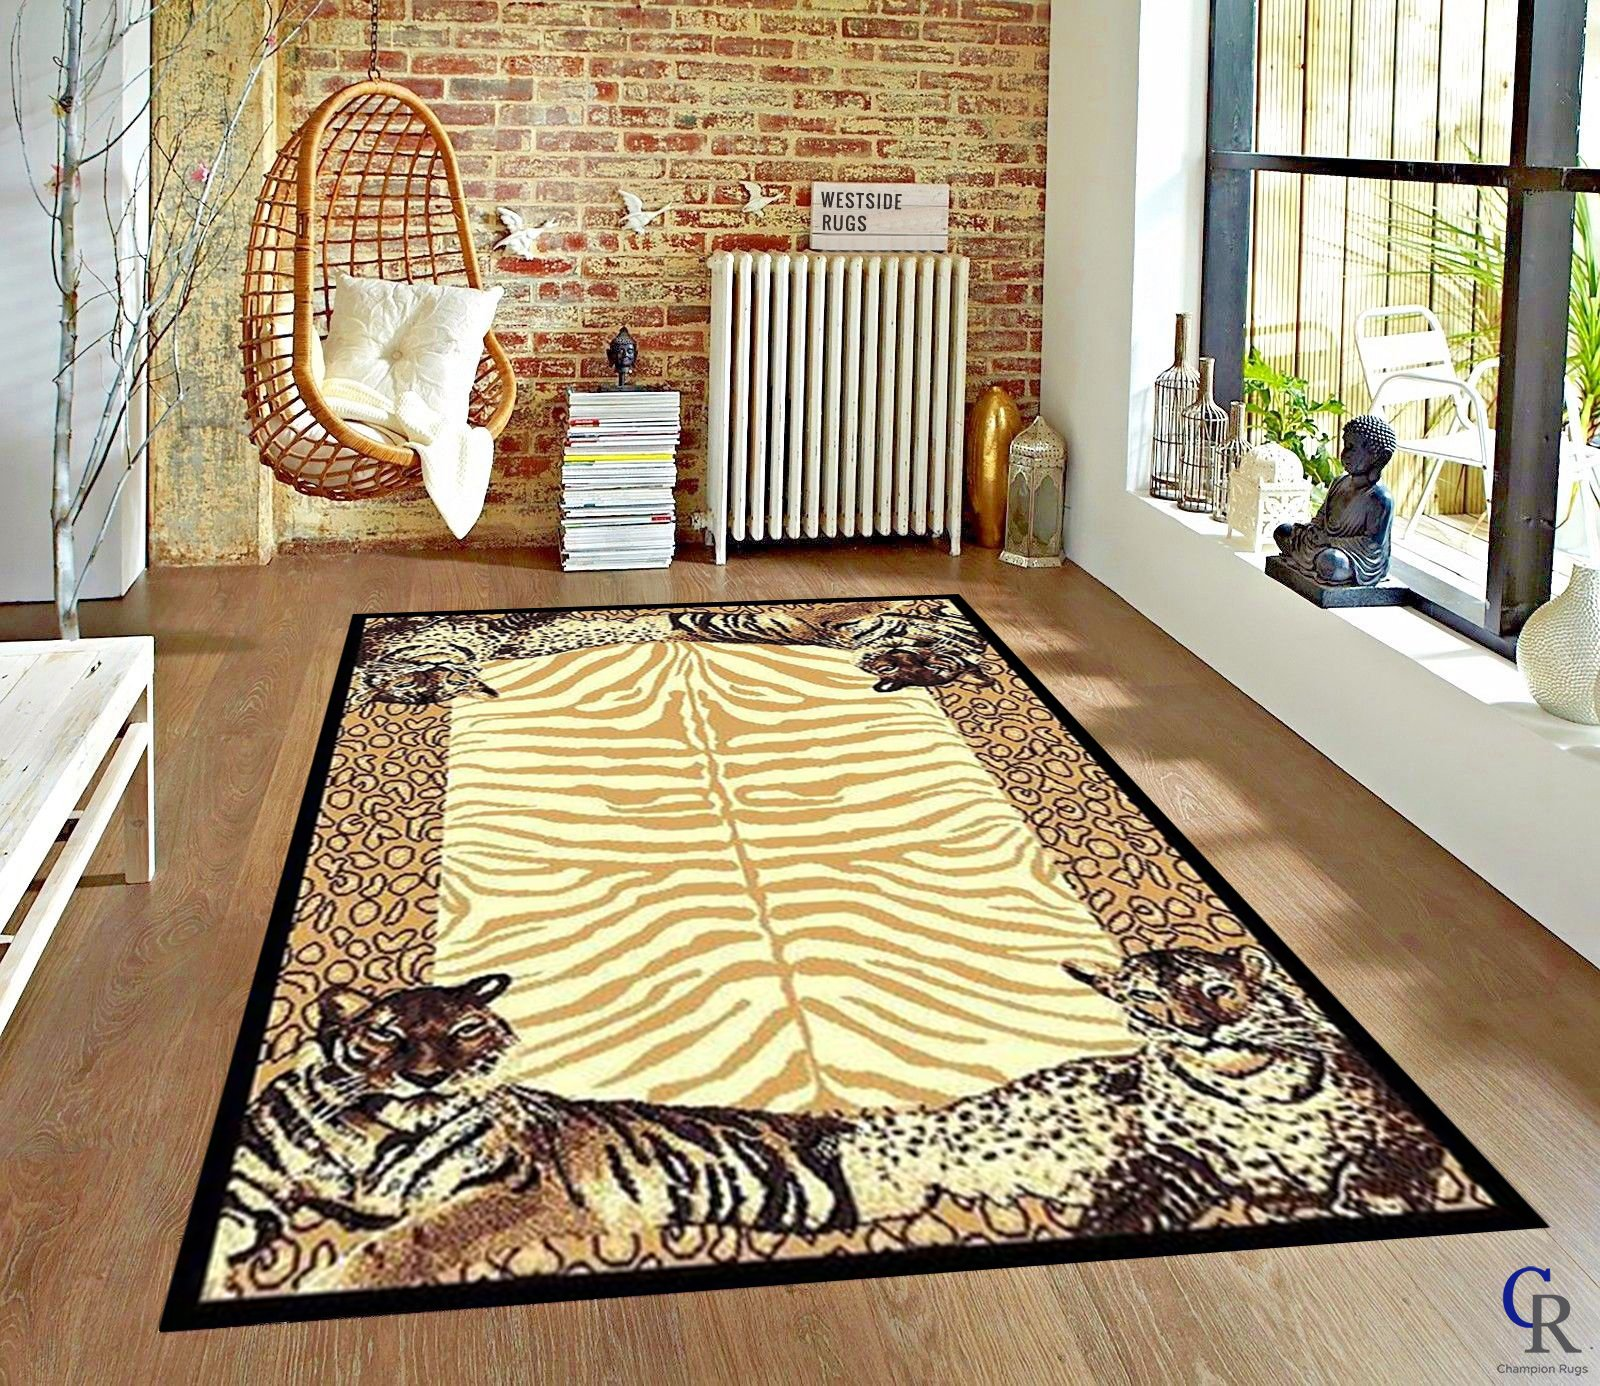 """Leopard Animal Skin Print with Tiger Border Area Rug (5' 3"""" x 7' 5"""") by Champion Rugs"""